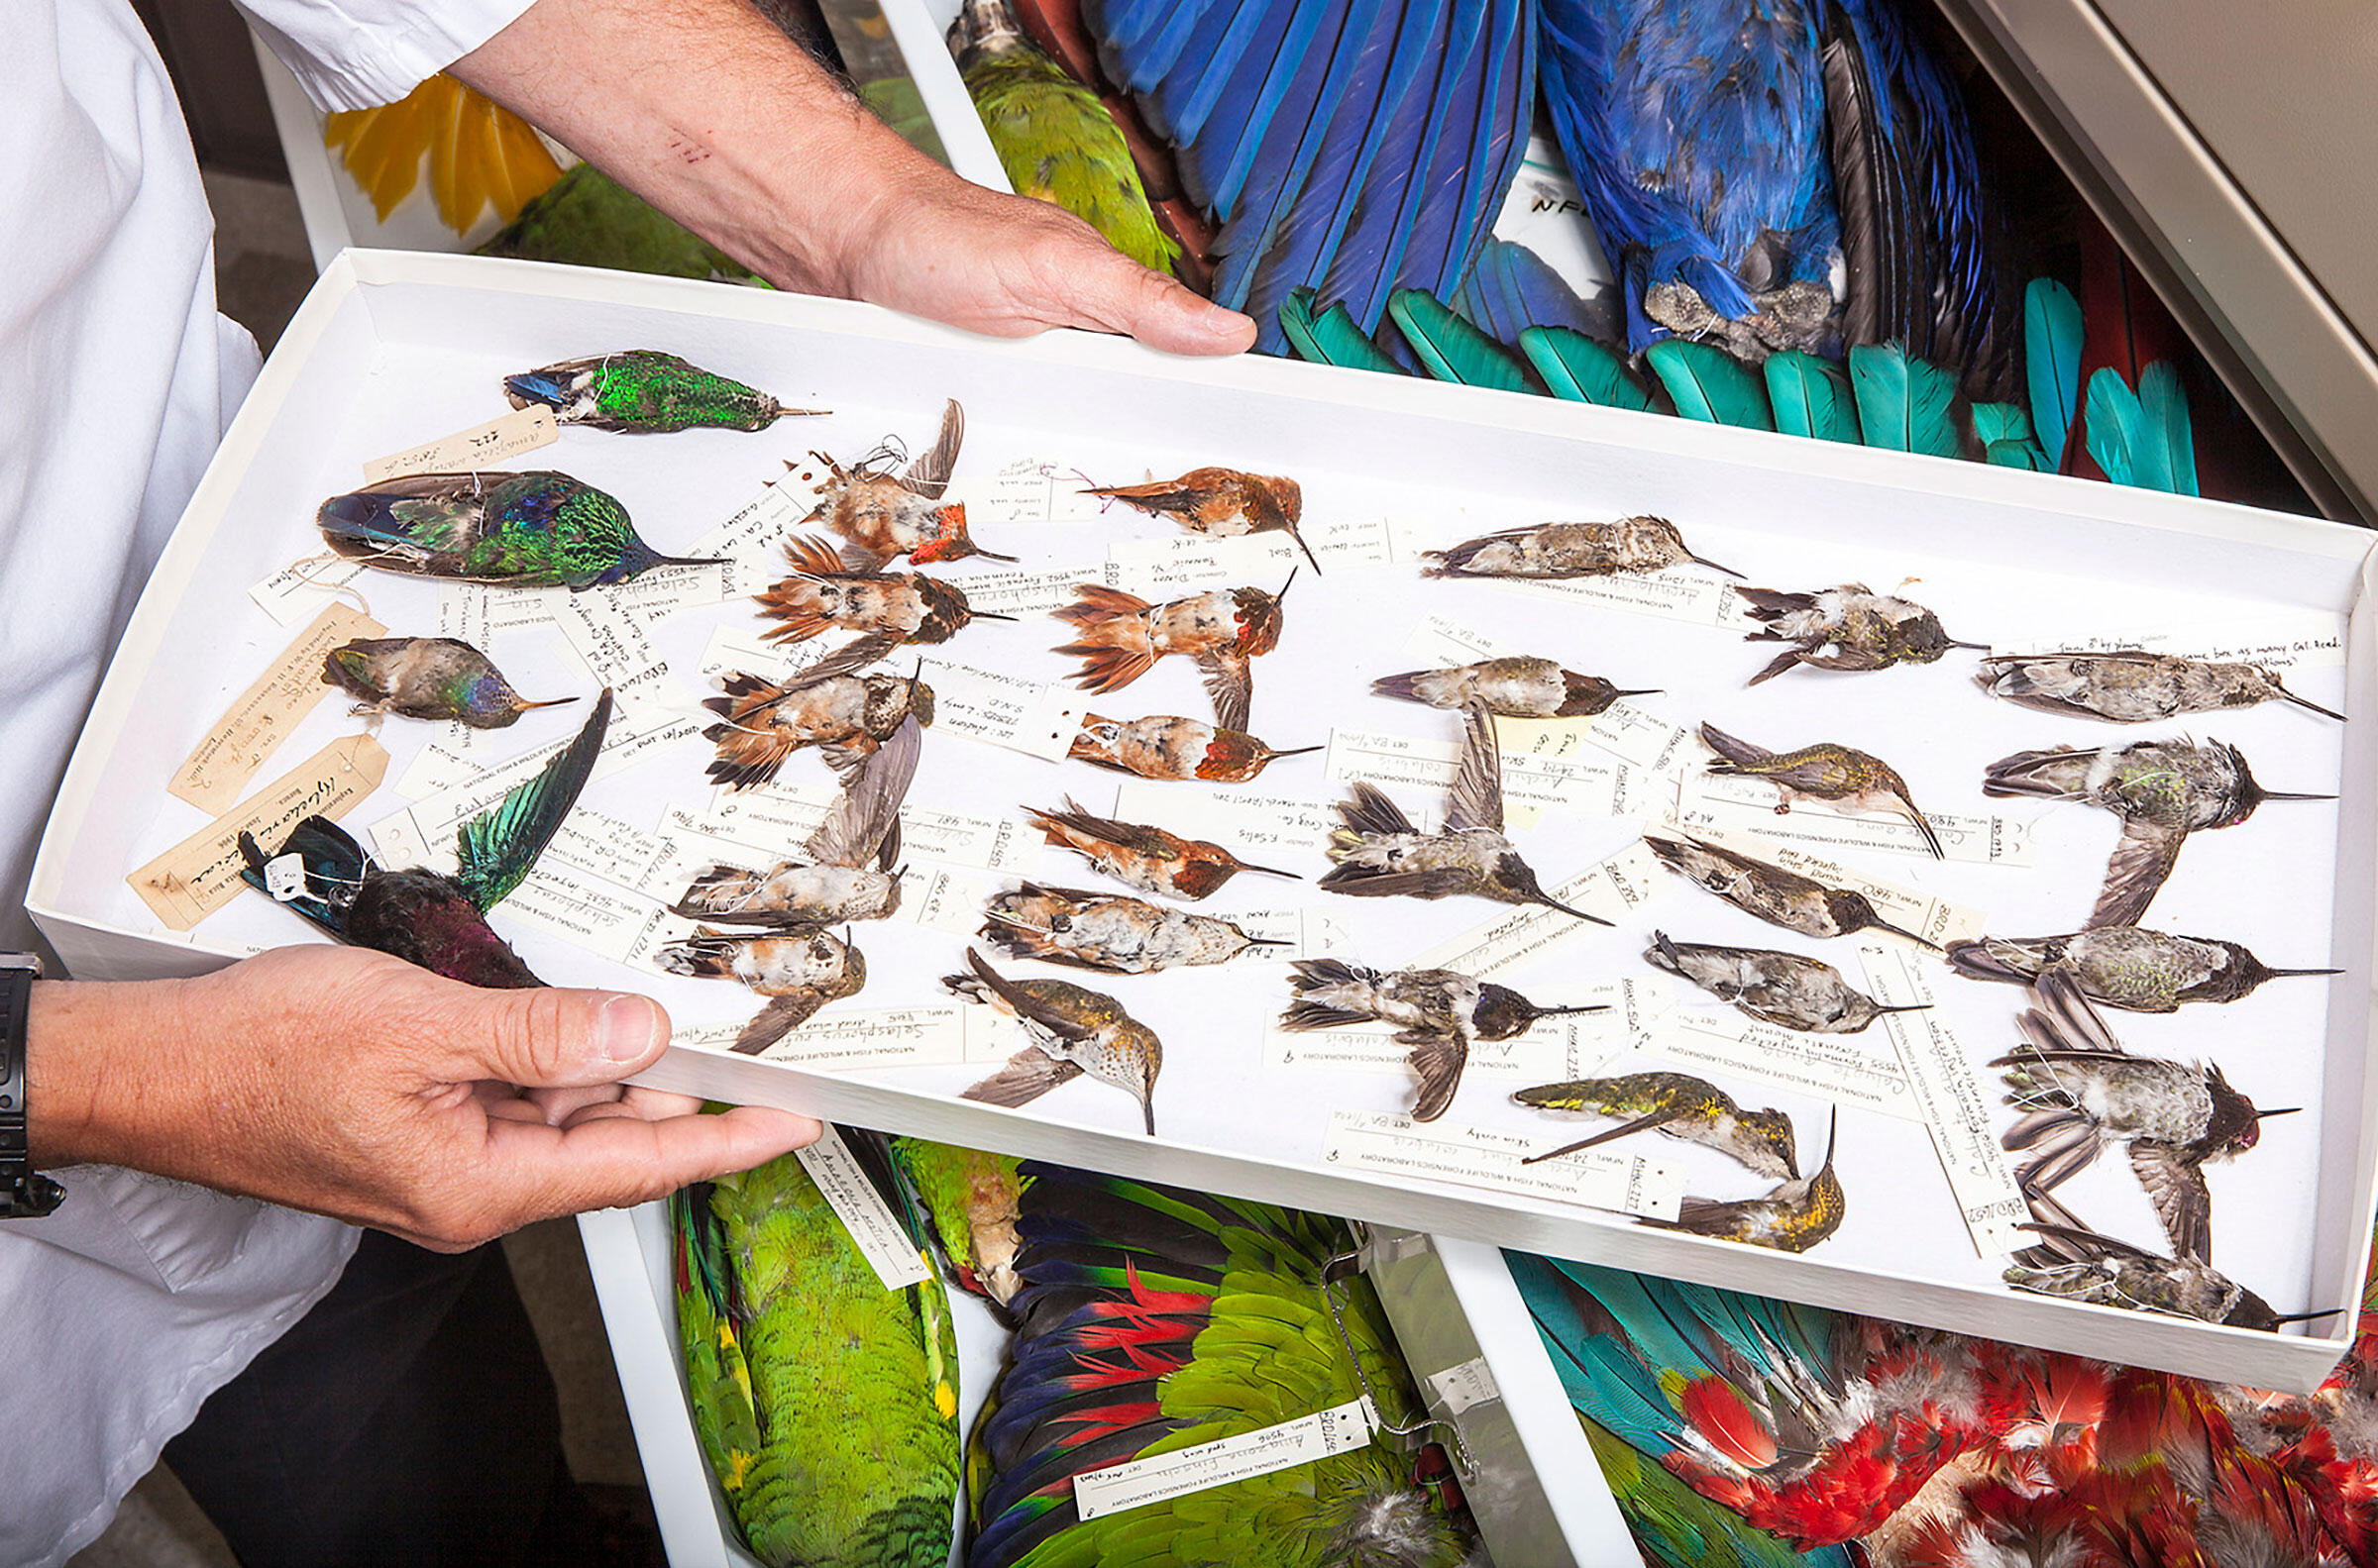 Trail compares each chuparosa with reference specimens, most of which have been donated by rehabilitation centers or refuges, or were once evidence in investigations. Tom Fowlks